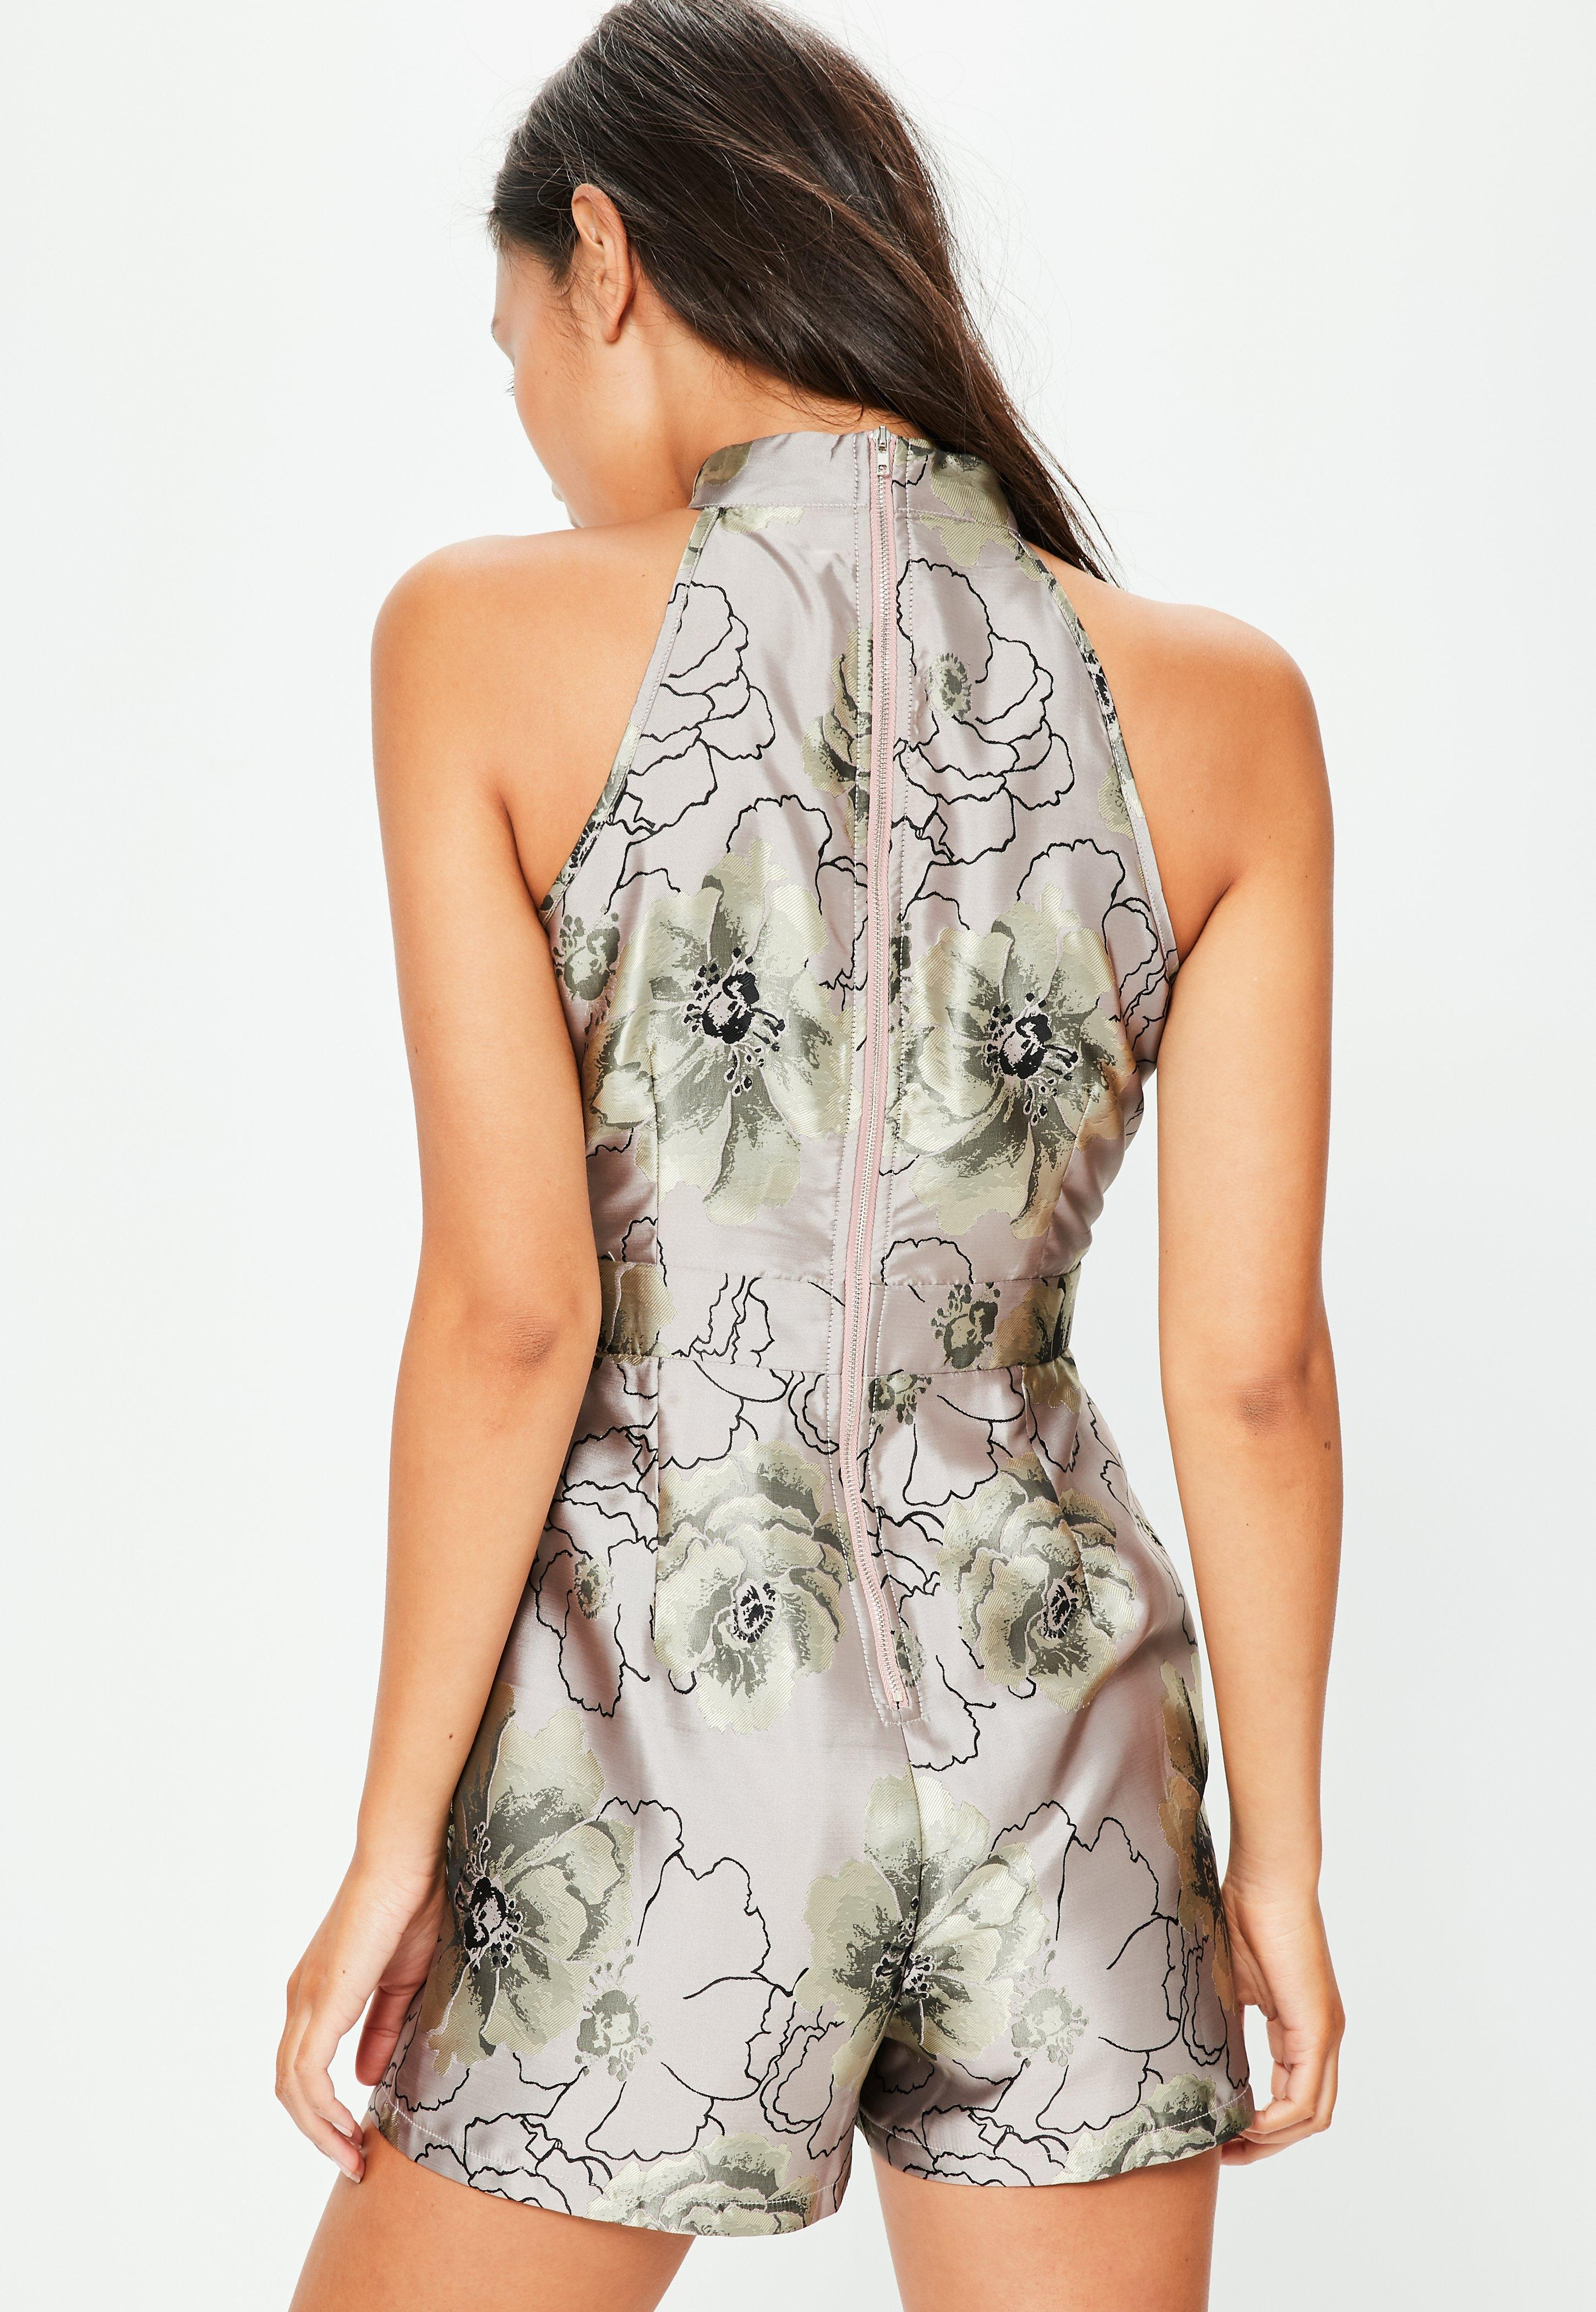 d393951445 Lyst - Missguided Silver Jacquard Floral Print High Neck Playsuit in ...